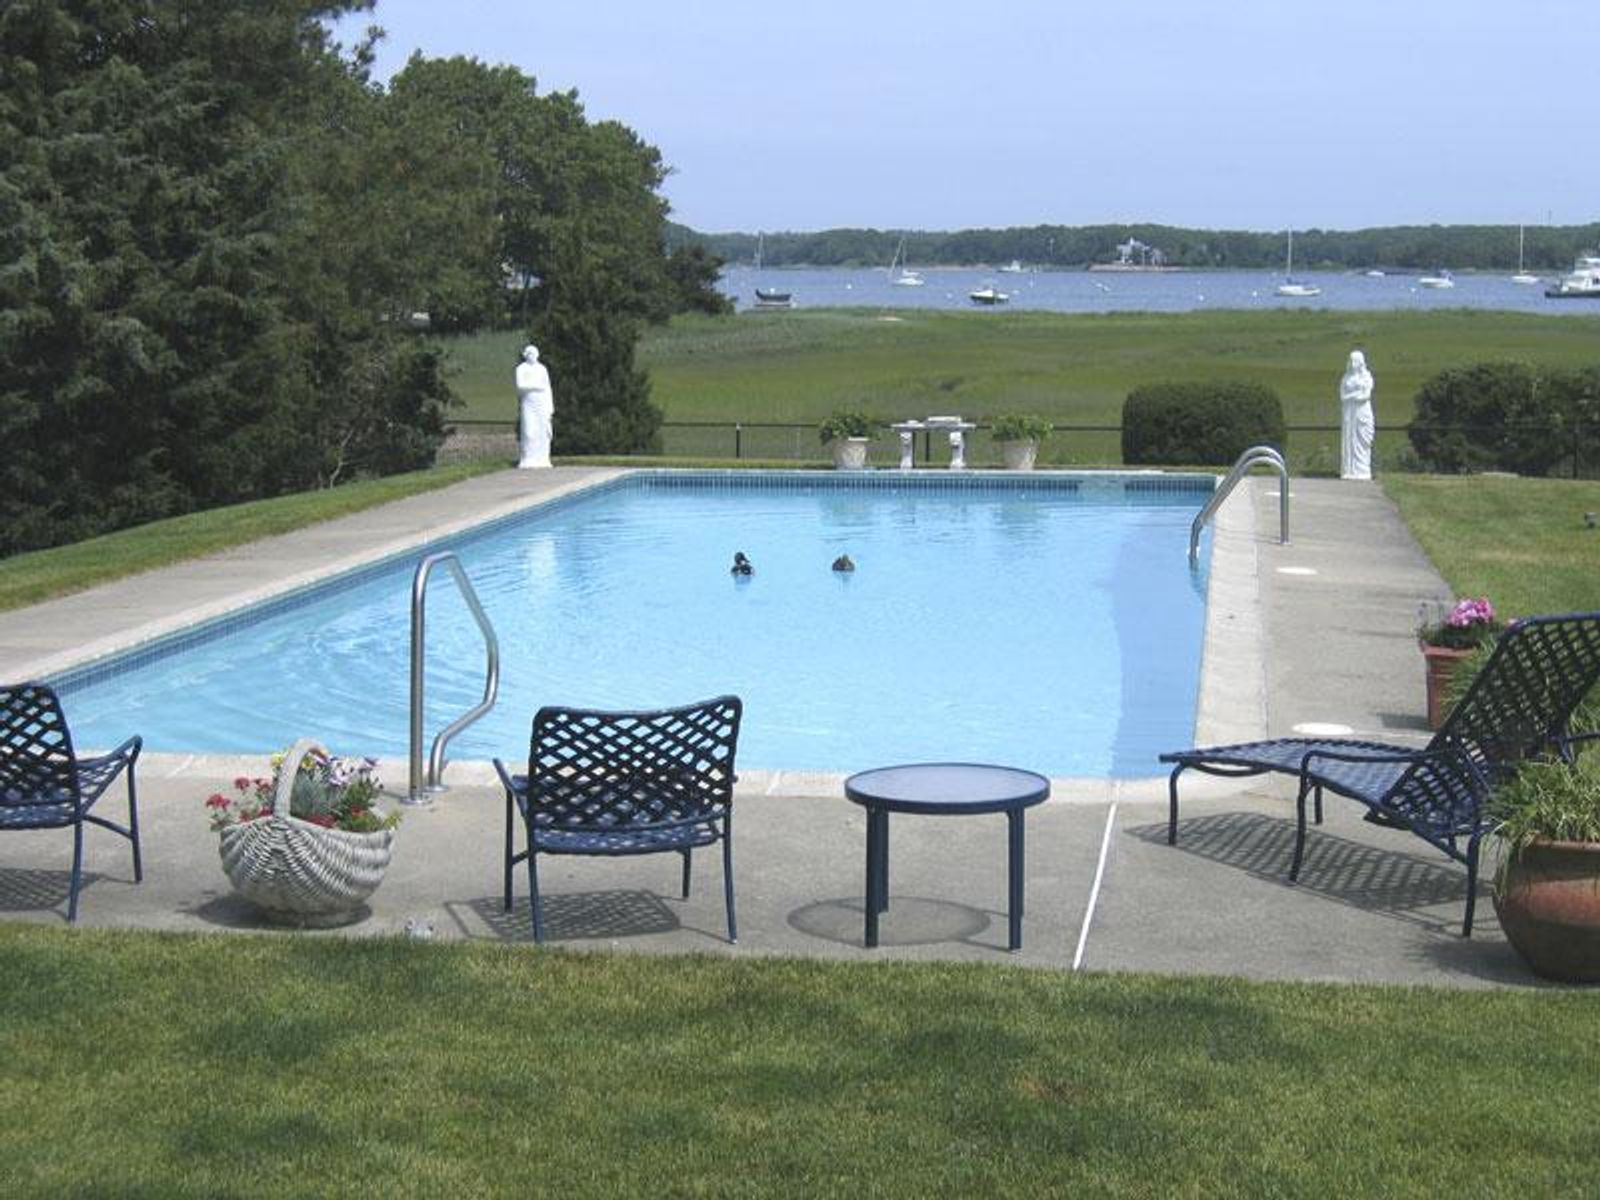 Sensational Property & Pool, Osterville MA Single Family Home - Cape Cod Real Estate